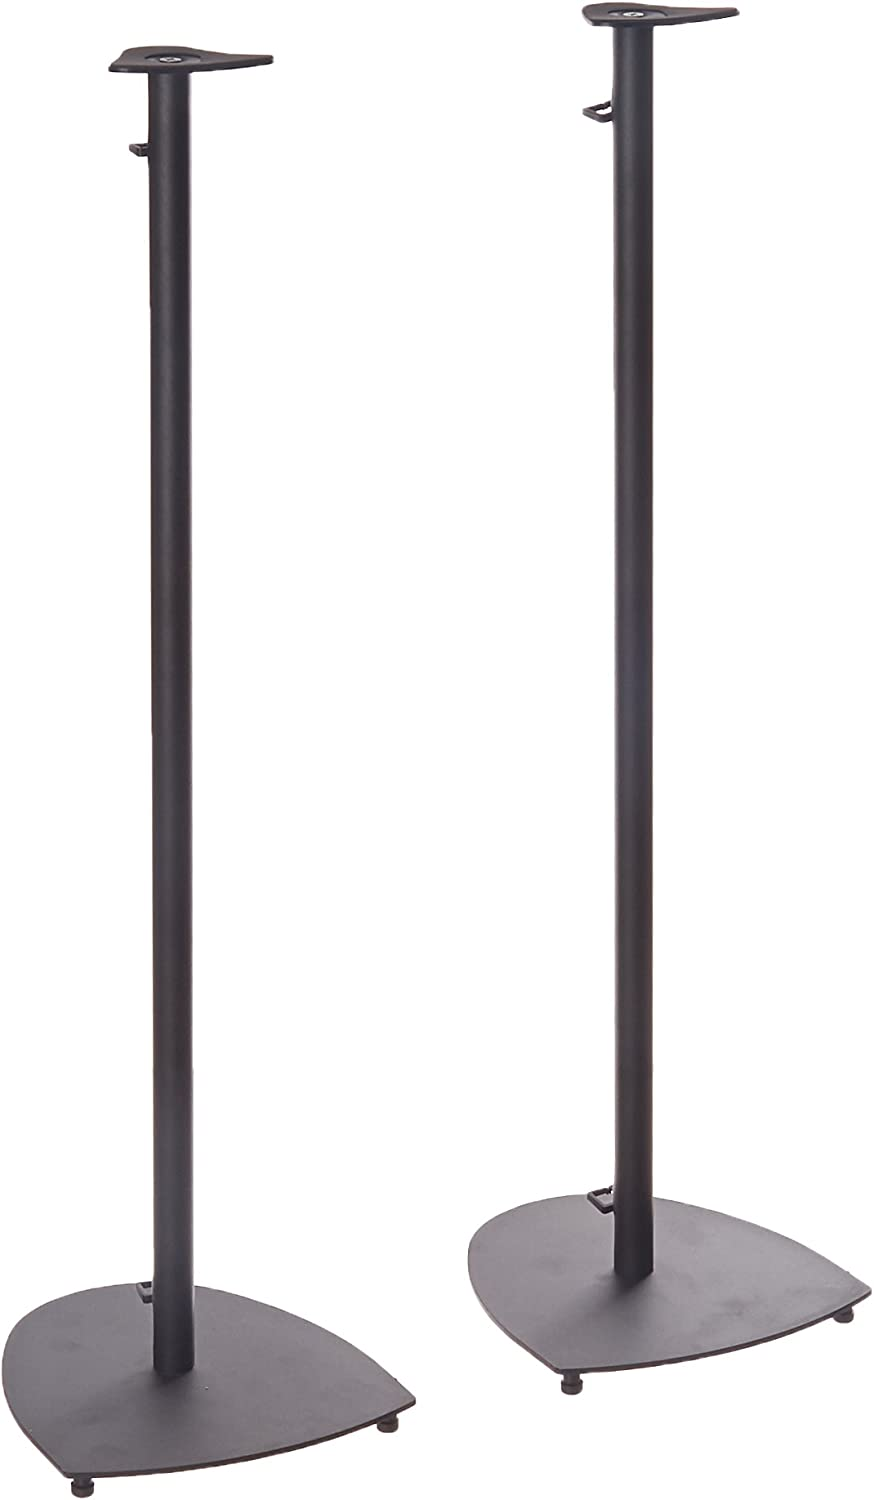 Definitive Technology ProStand 600 800 Floor Stands – Pair Black